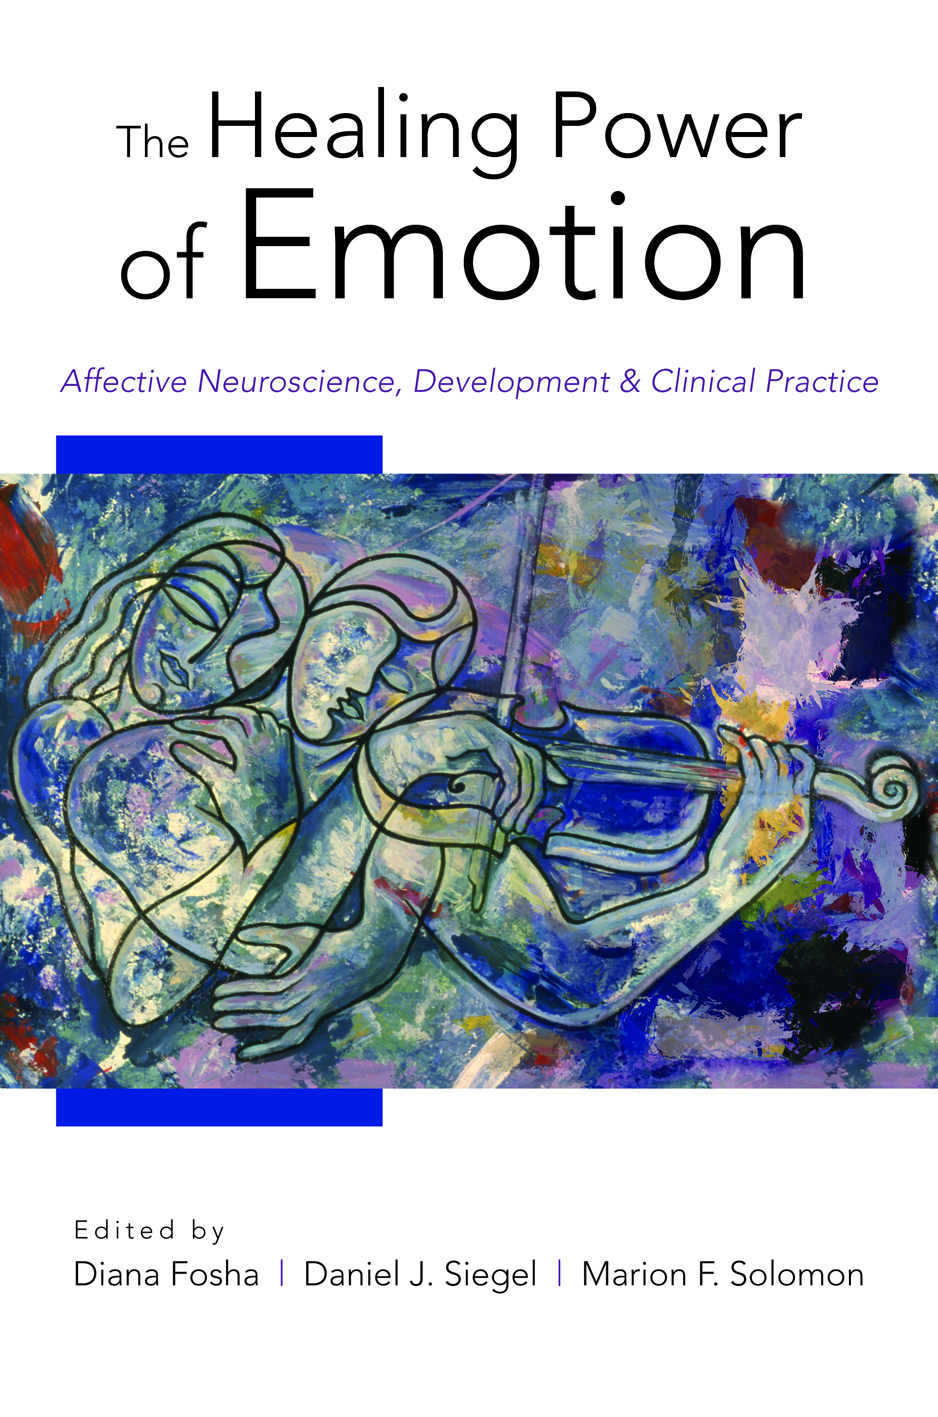 The Healing Power of Emotion: Affective Neuroscience, Development & Clinical Practice (Norton Series on Interpersonal Neurobiology) By: